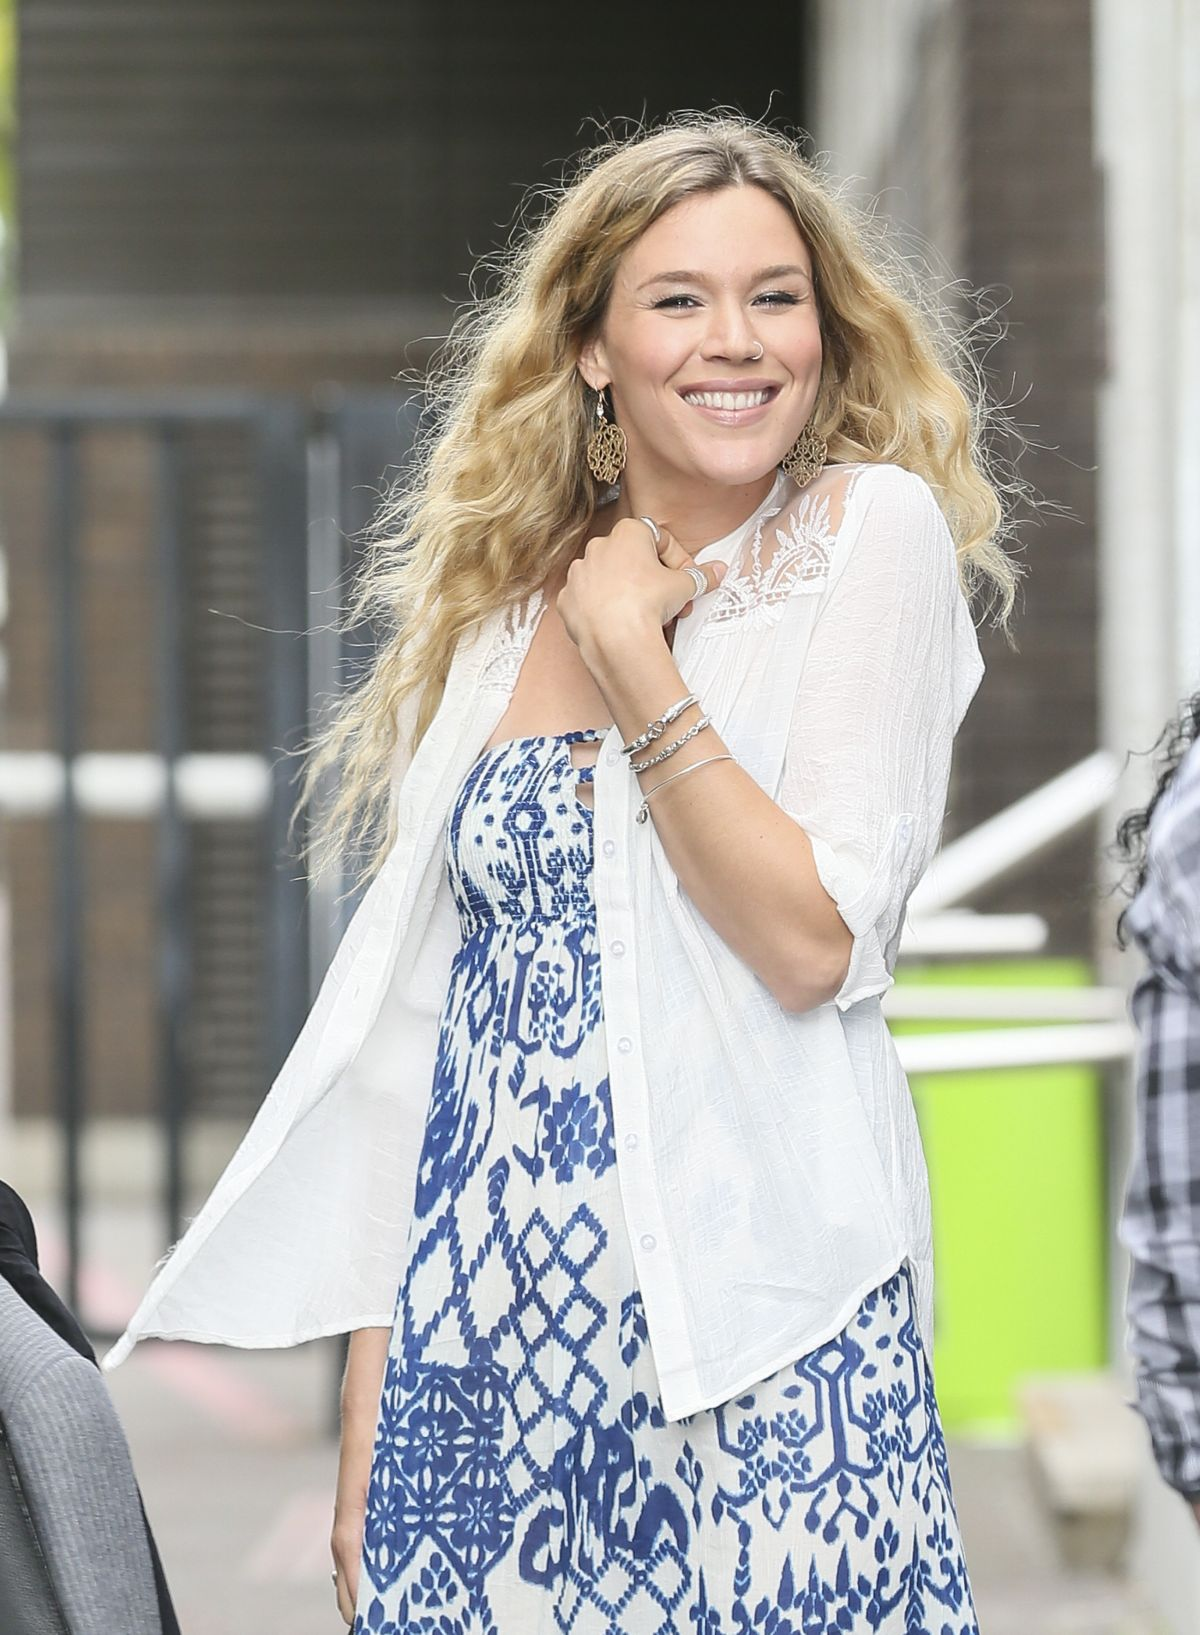 JOSS STONE at ITV Studios in London 08/05/2015